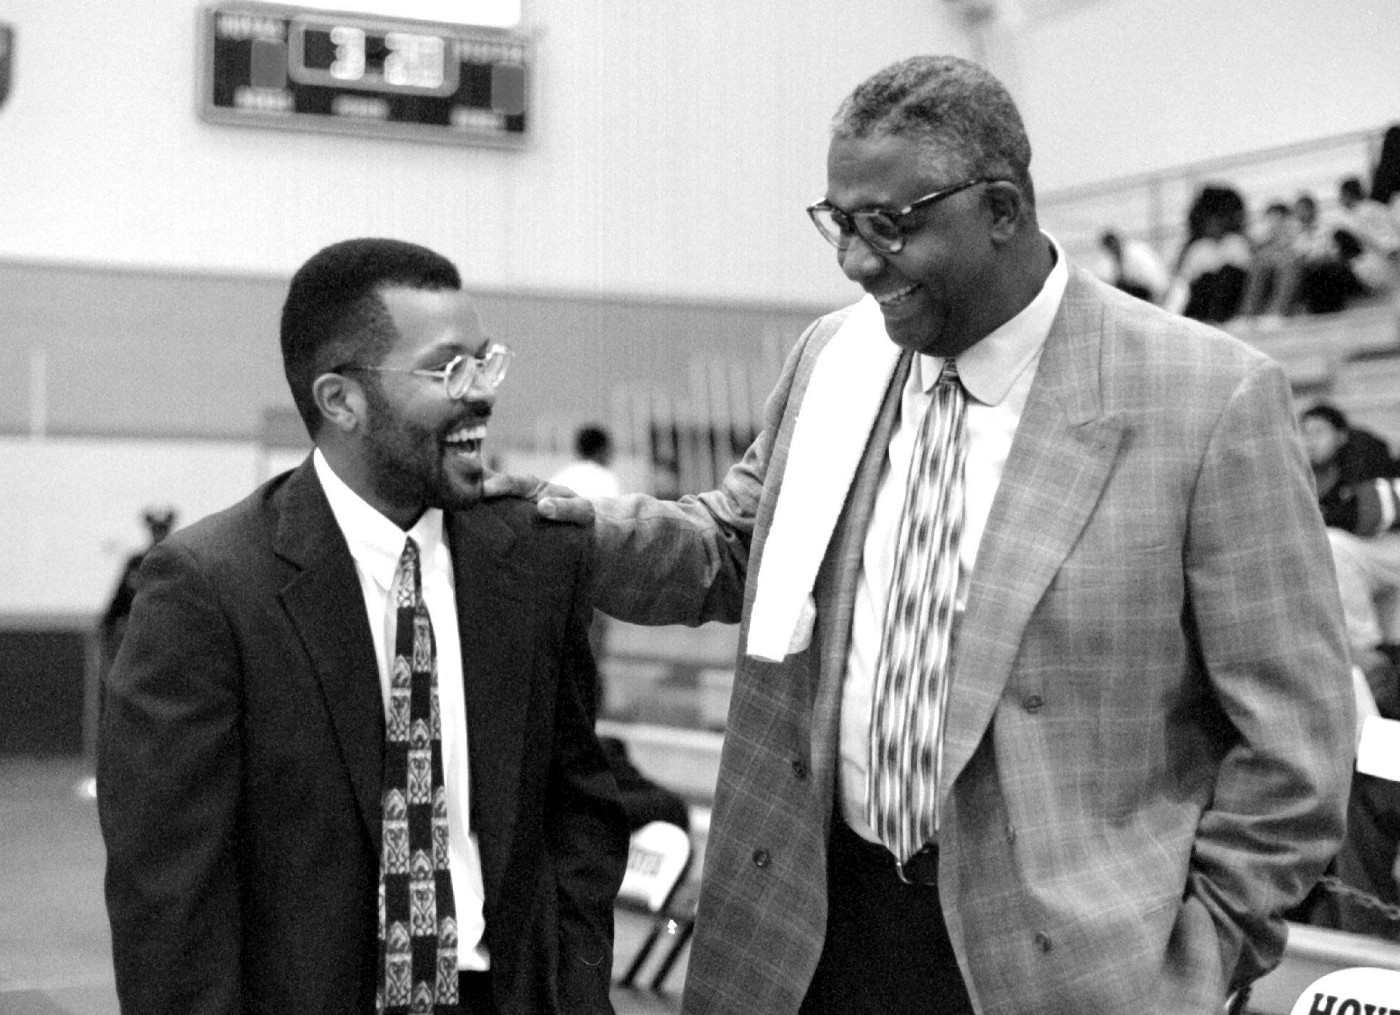 Coach Horace Broadnax (left) who played basketball for Georgetown meets with his old coach John Thompson before the game.